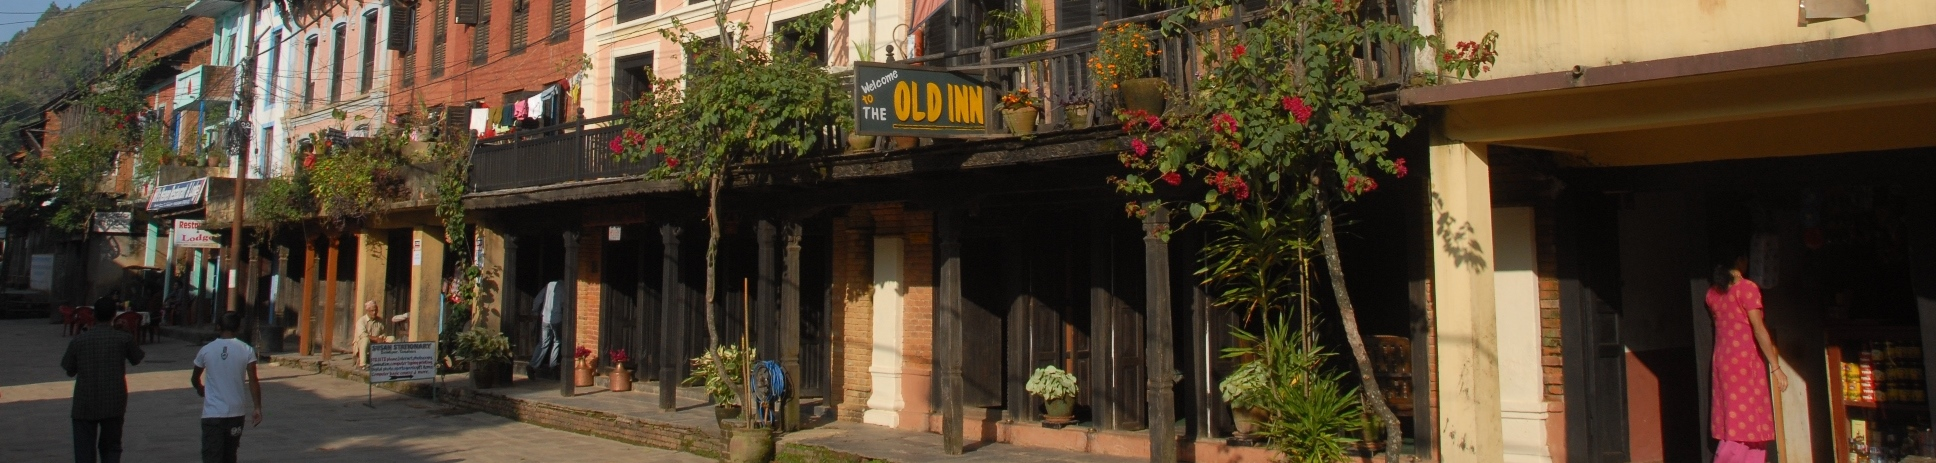 Meridian-The-Old-Inn